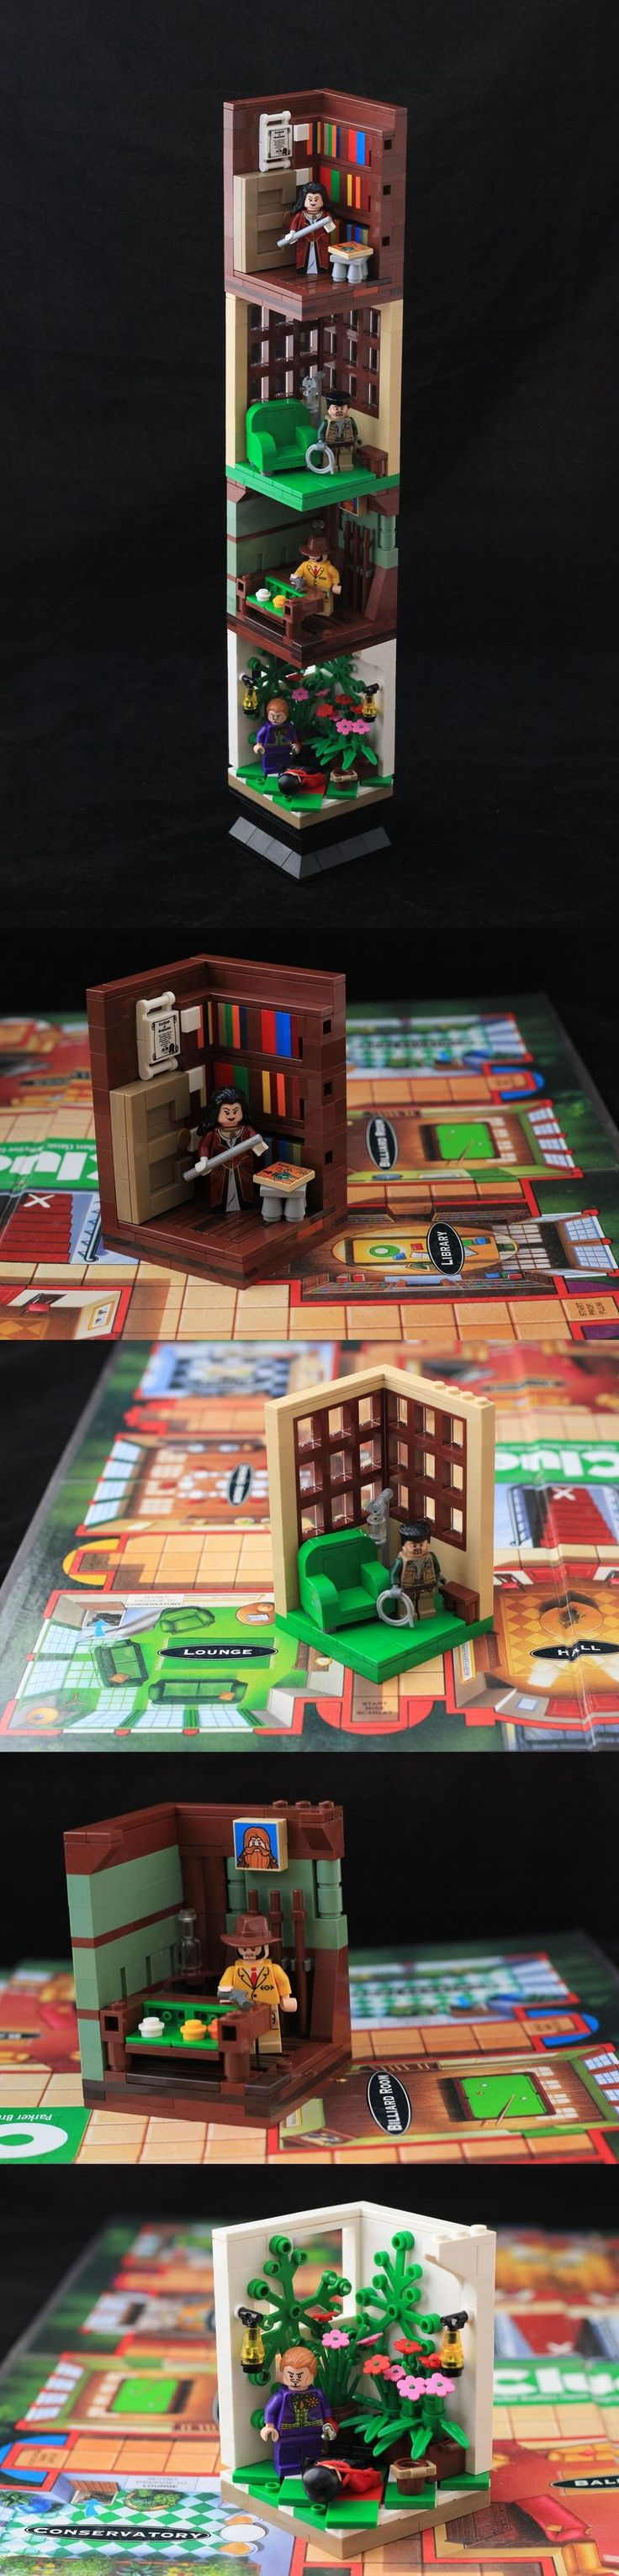 Clue Story Tower